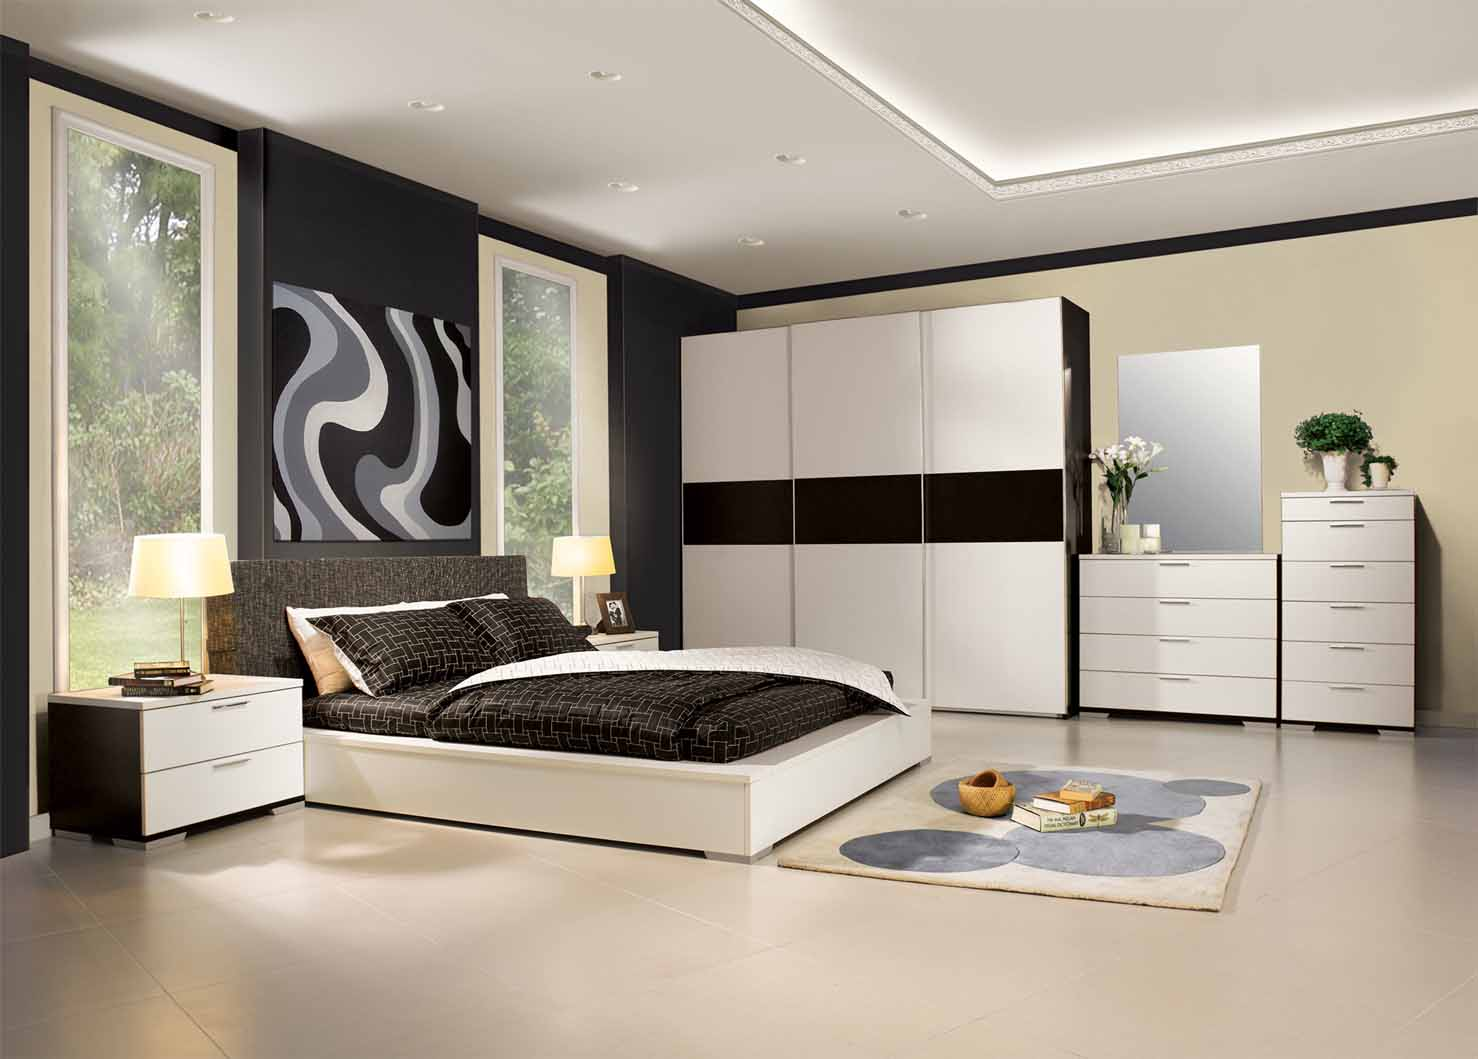 Modern bedroom design fouadtalal for Bedroom theme design